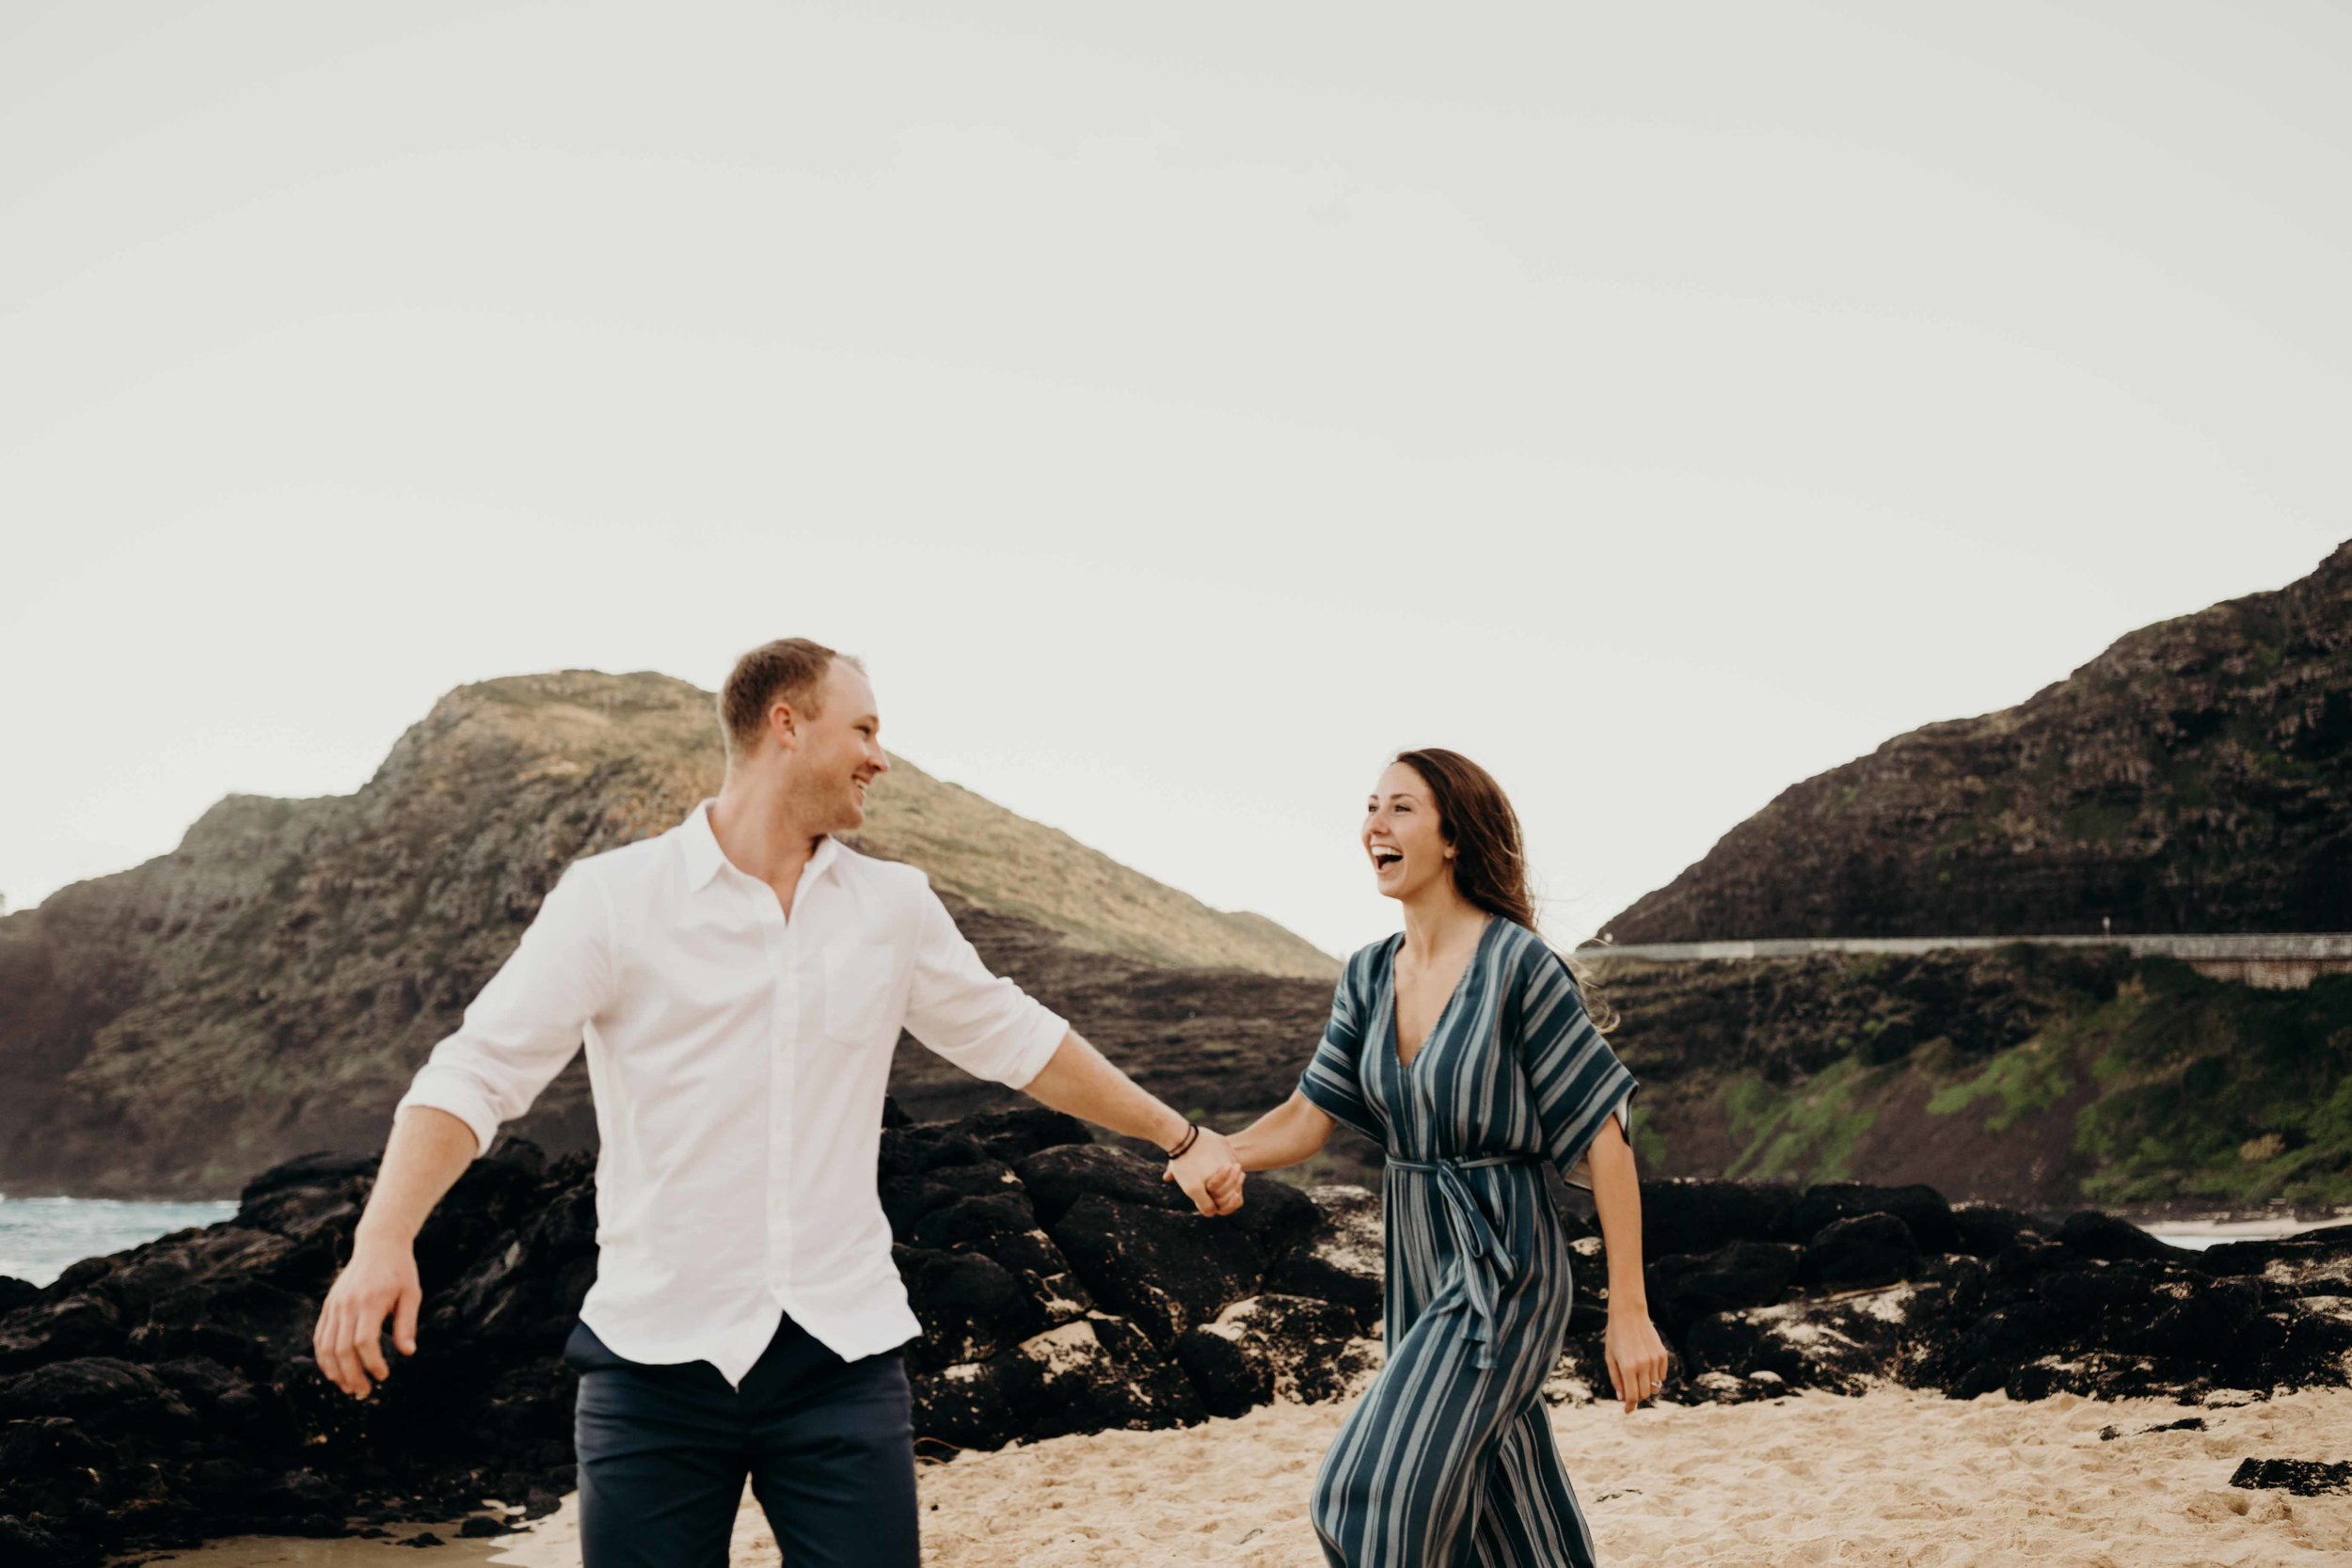 hawaii-engagement-photographer-keani-bakula-makapuu-beach-30.jpg